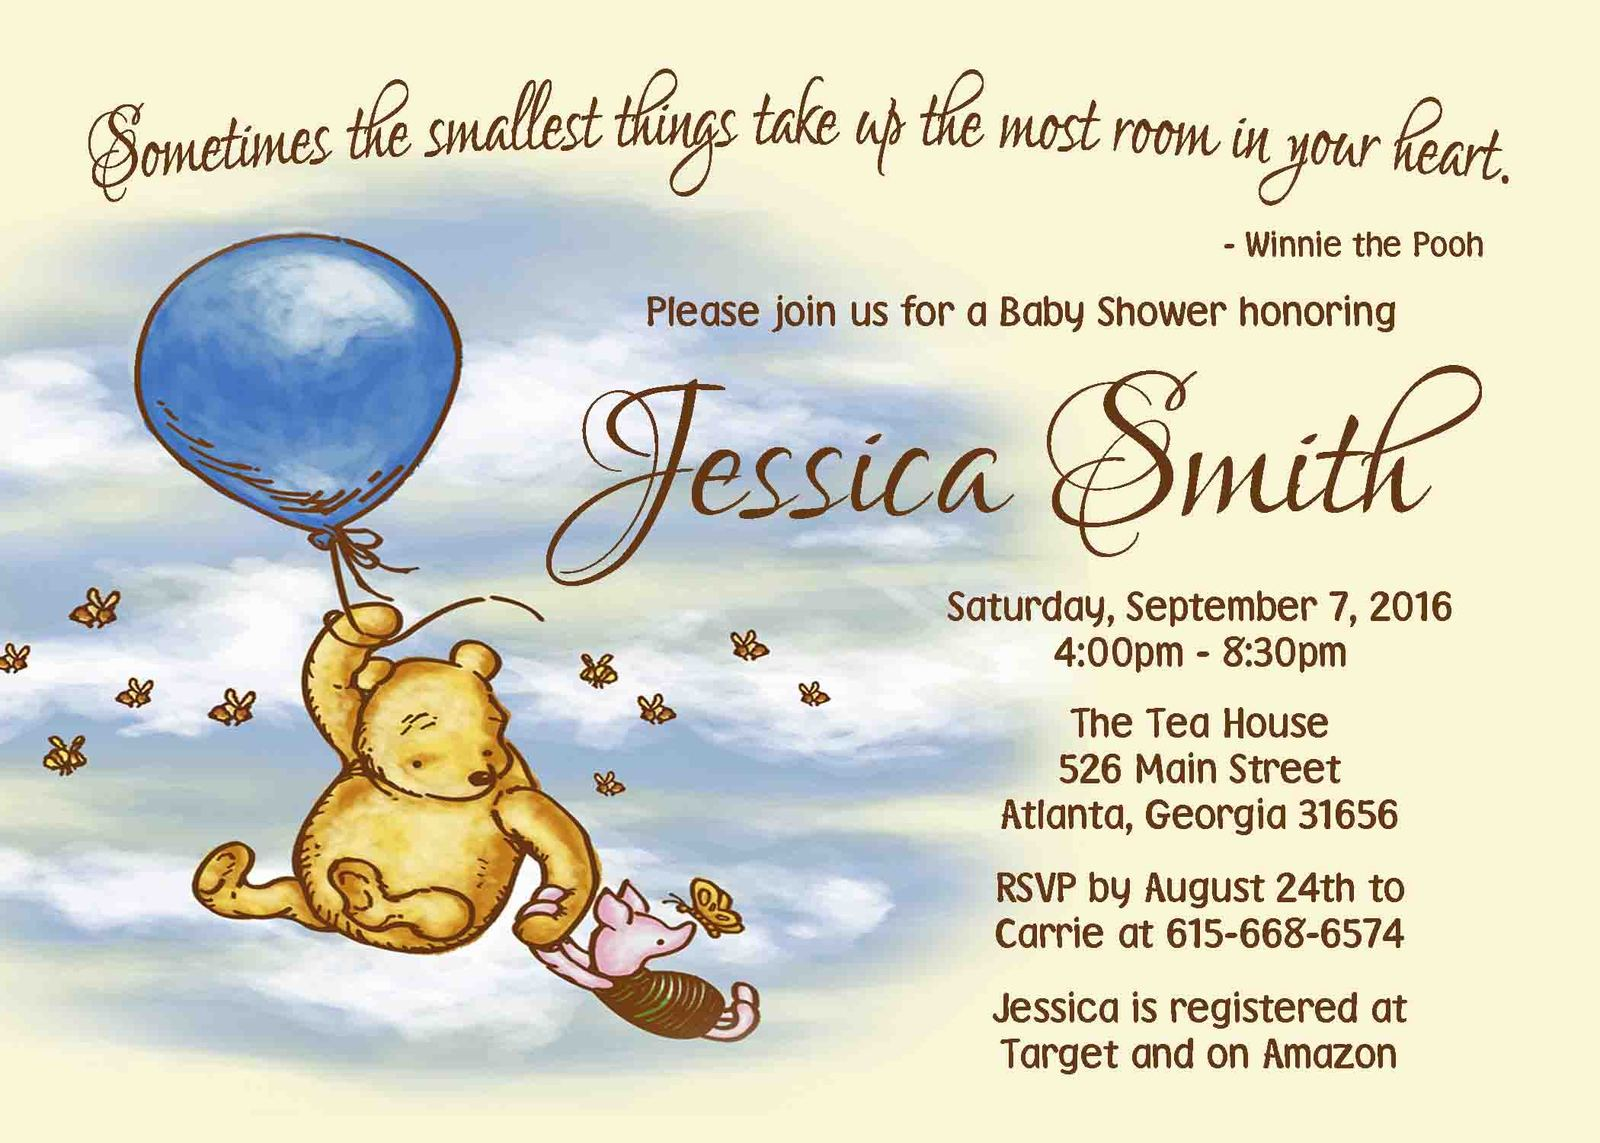 picture about Printable Winnie the Pooh Baby Shower Invitations called Winnie the Pooh Child Shower invitation Little one and 50 identical products